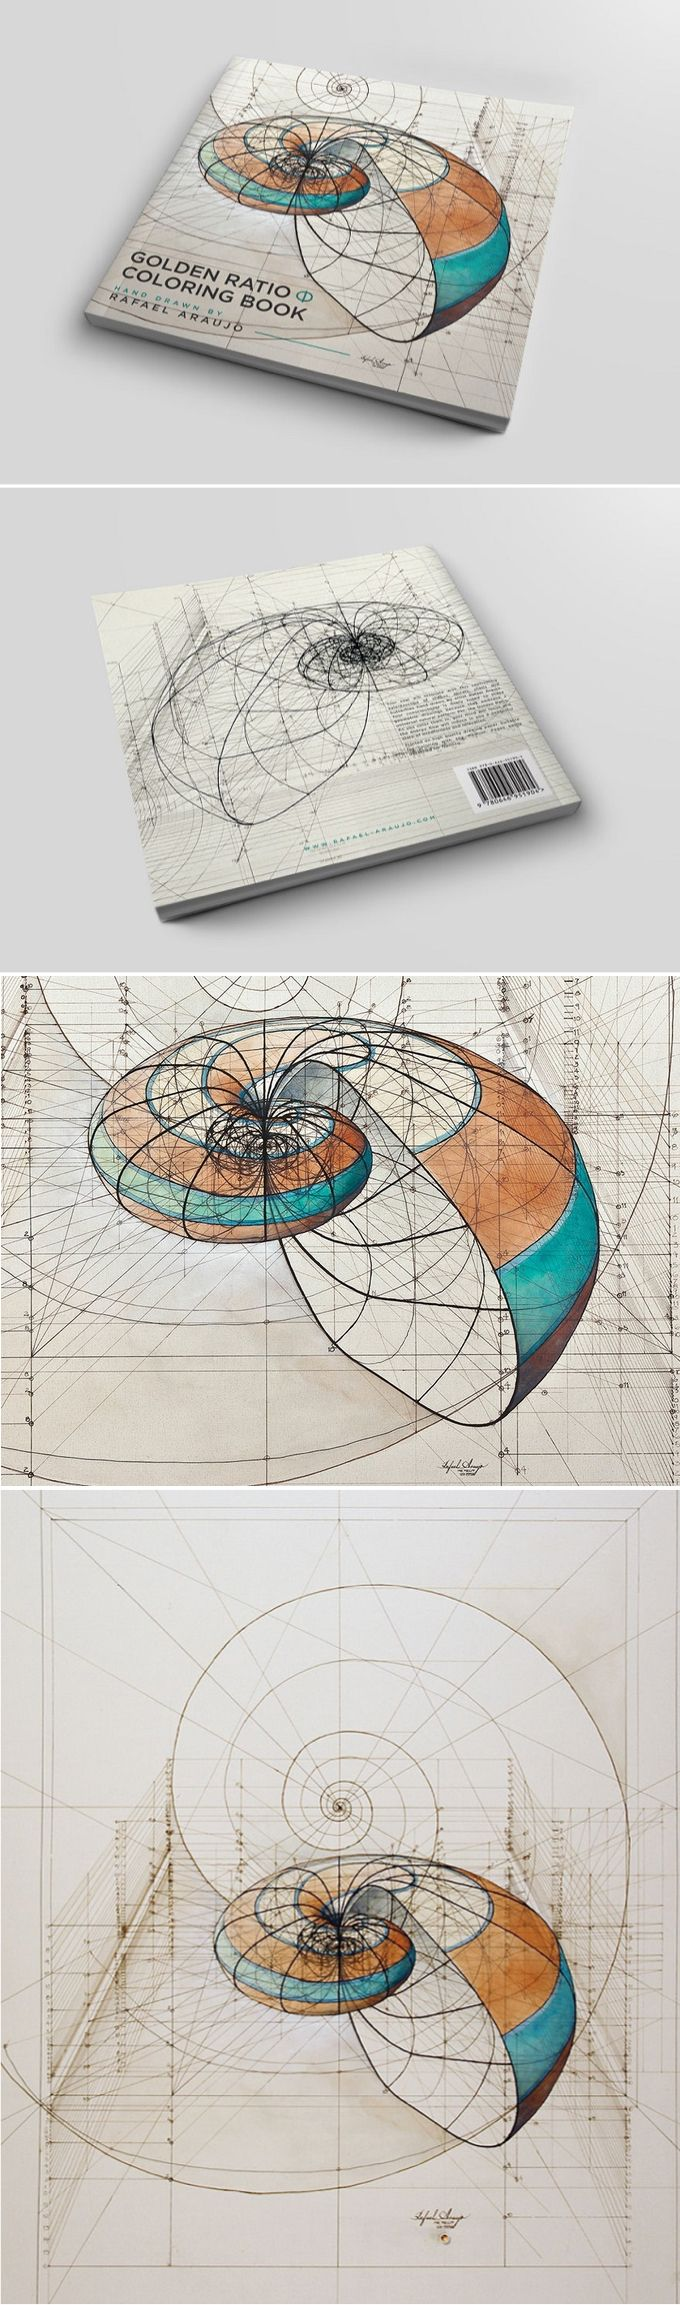 Coloring Book Celebrates Mathematical Beauty Of Nature With Hand Drawn Golden Ratio Illustrations